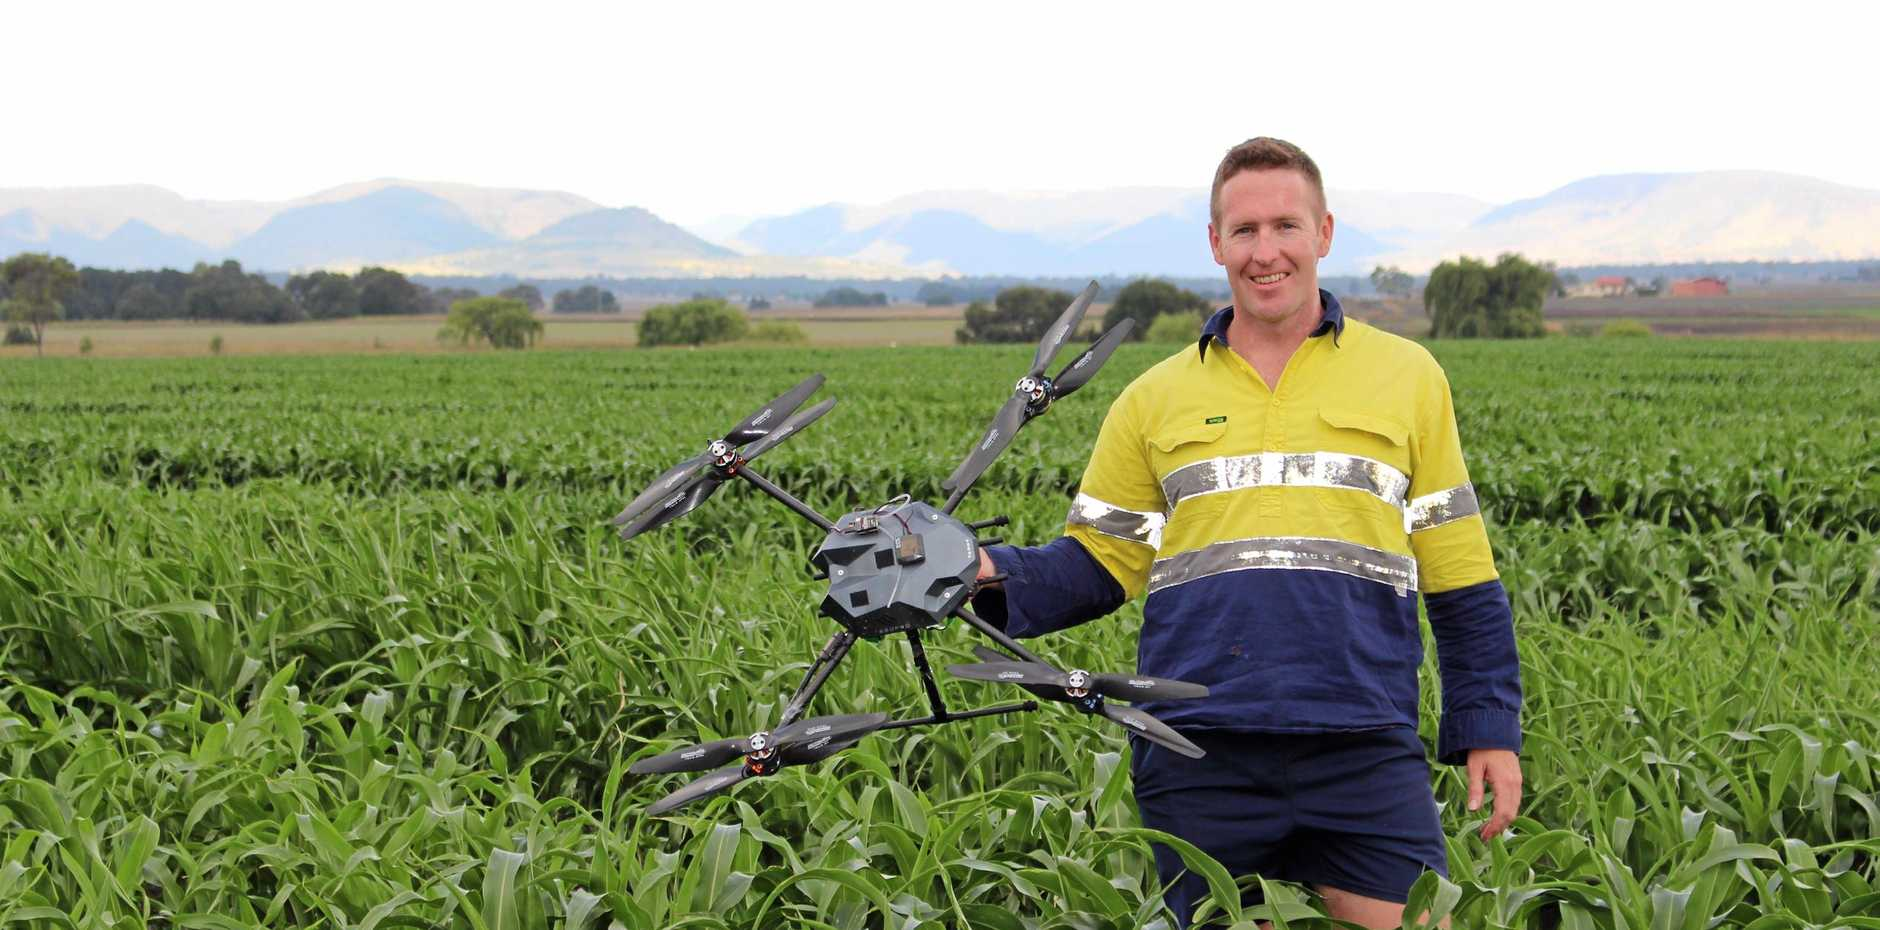 FUTURE OF FARMING: Department of Agriculture technical officer Ken Laws uses drones and computer technology to create complex three-dimensional maps of sorghum crops to use in plant analysis.